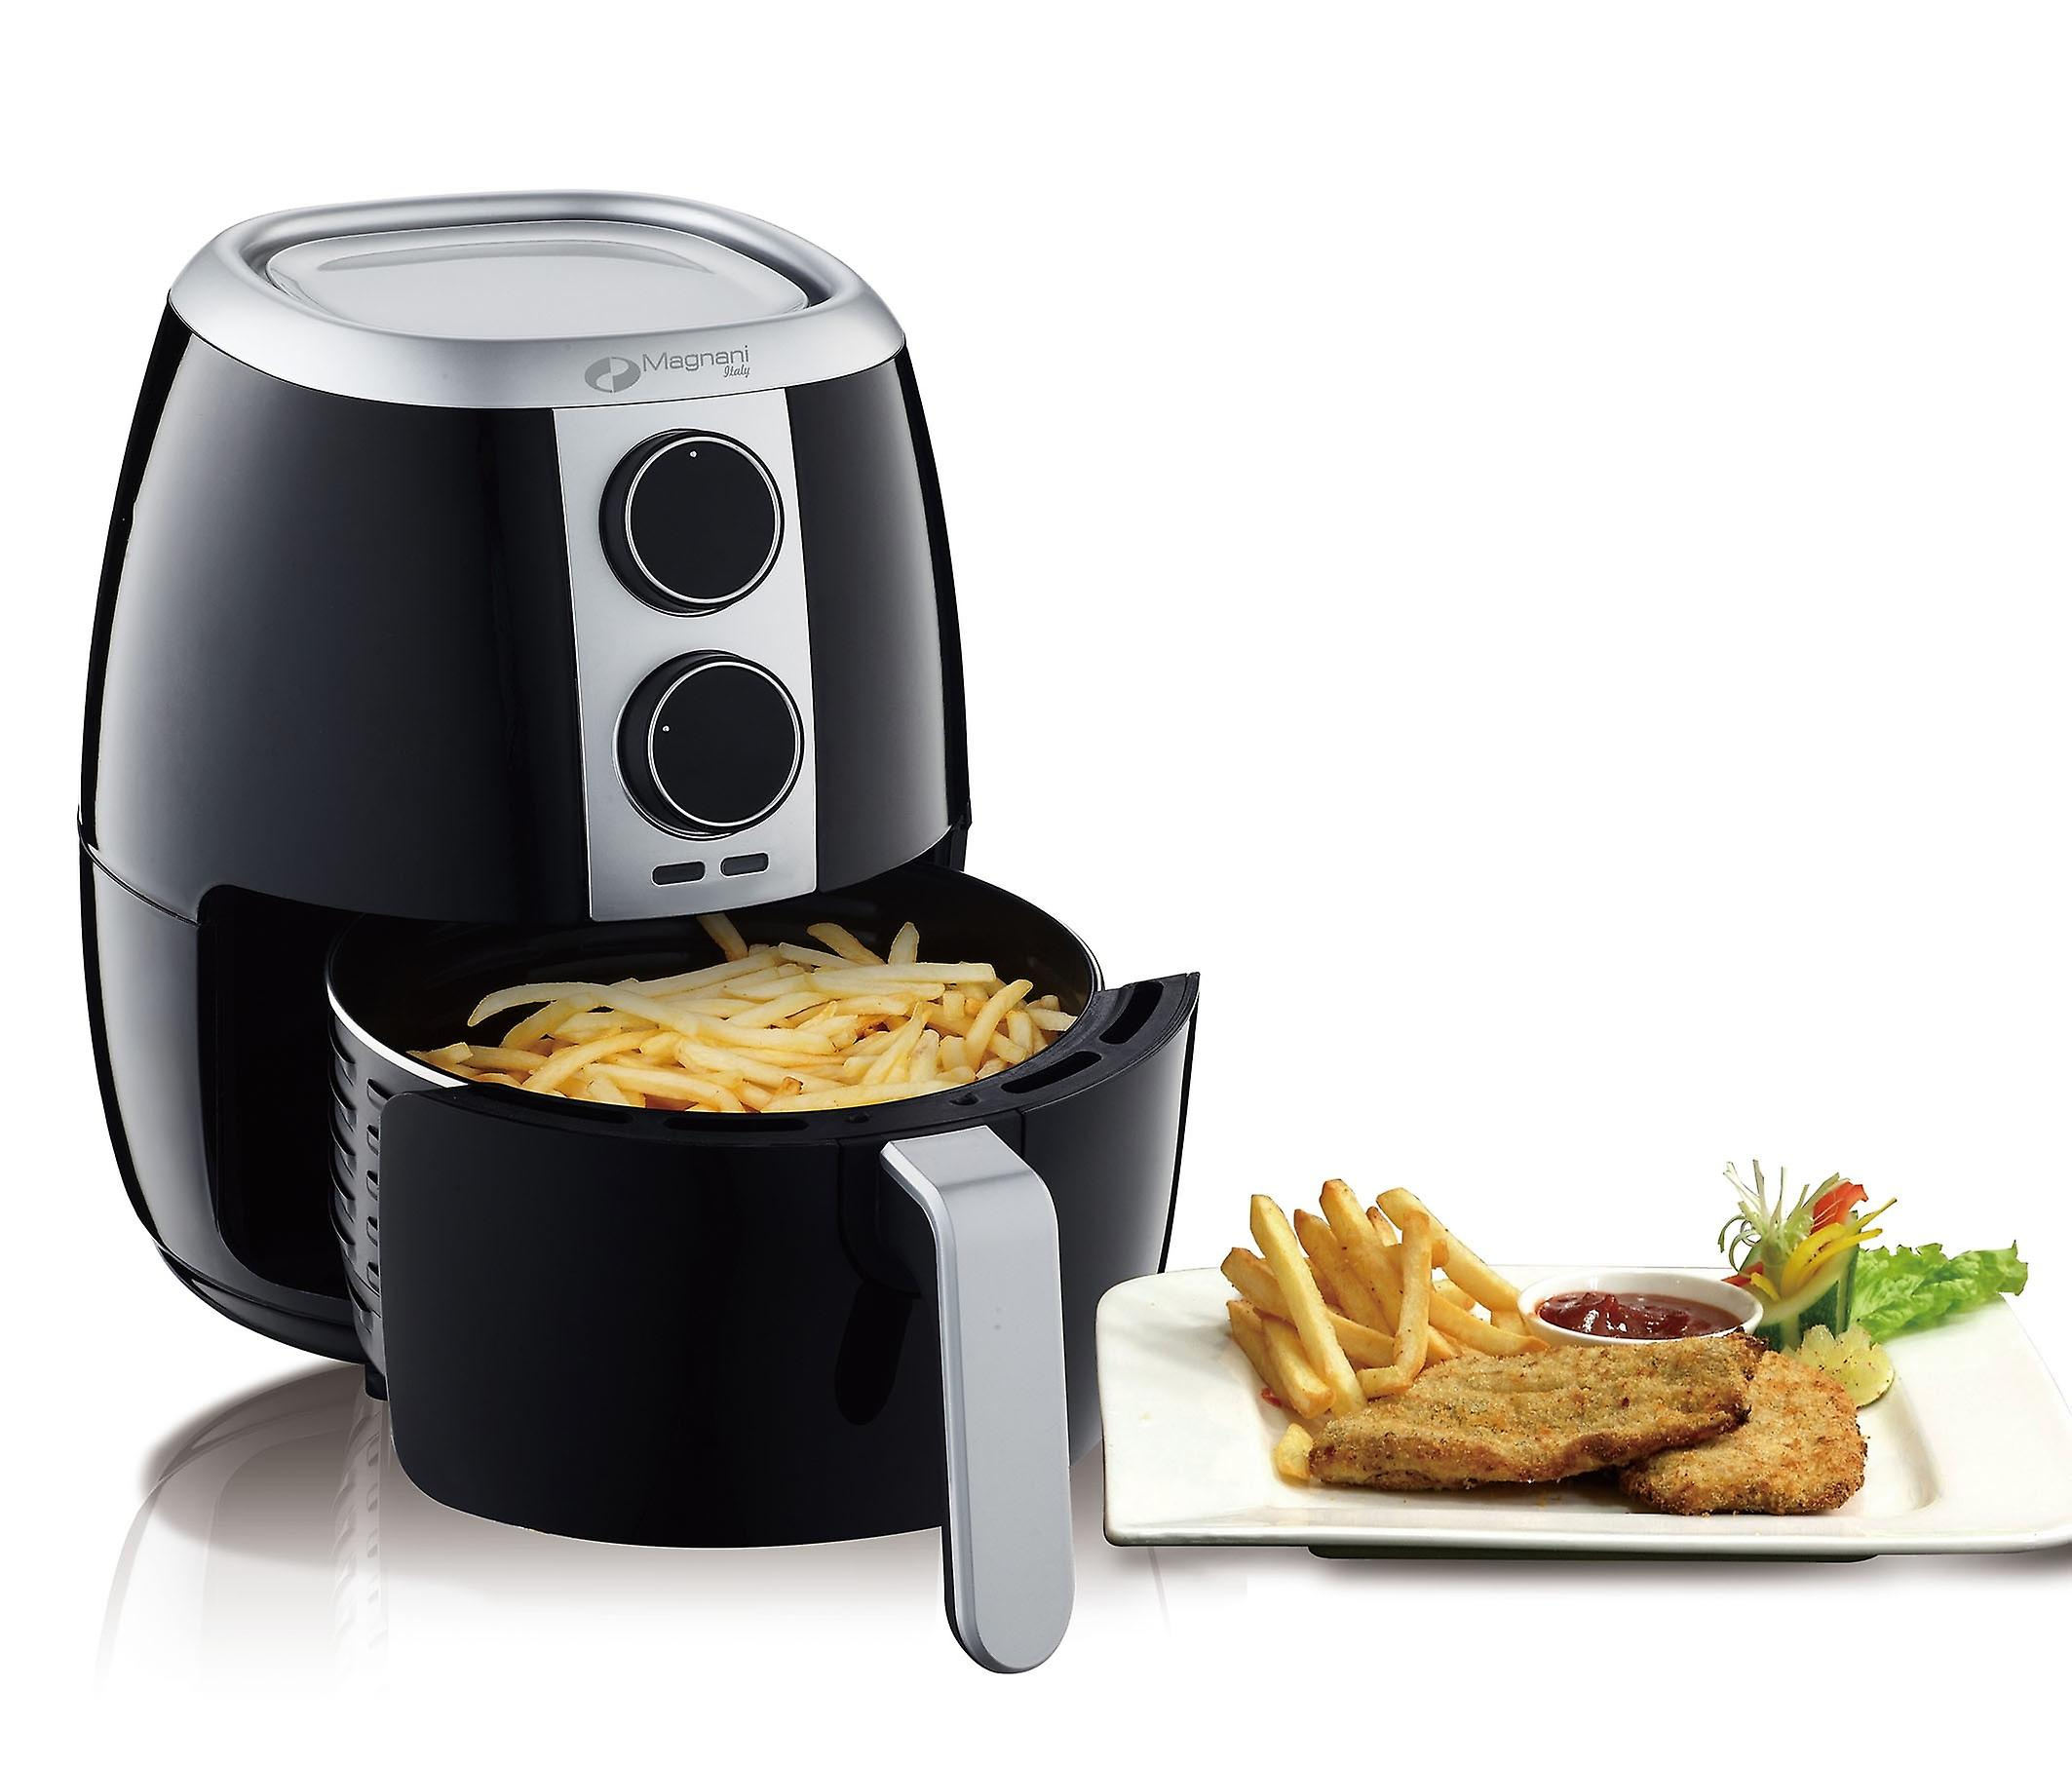 MAGNANI Hot air fryer XL with 3.5 l non-stick coated frying basket, Airfryer fryer for baking, deep-frying, grilling and frying without oil, 1350 W